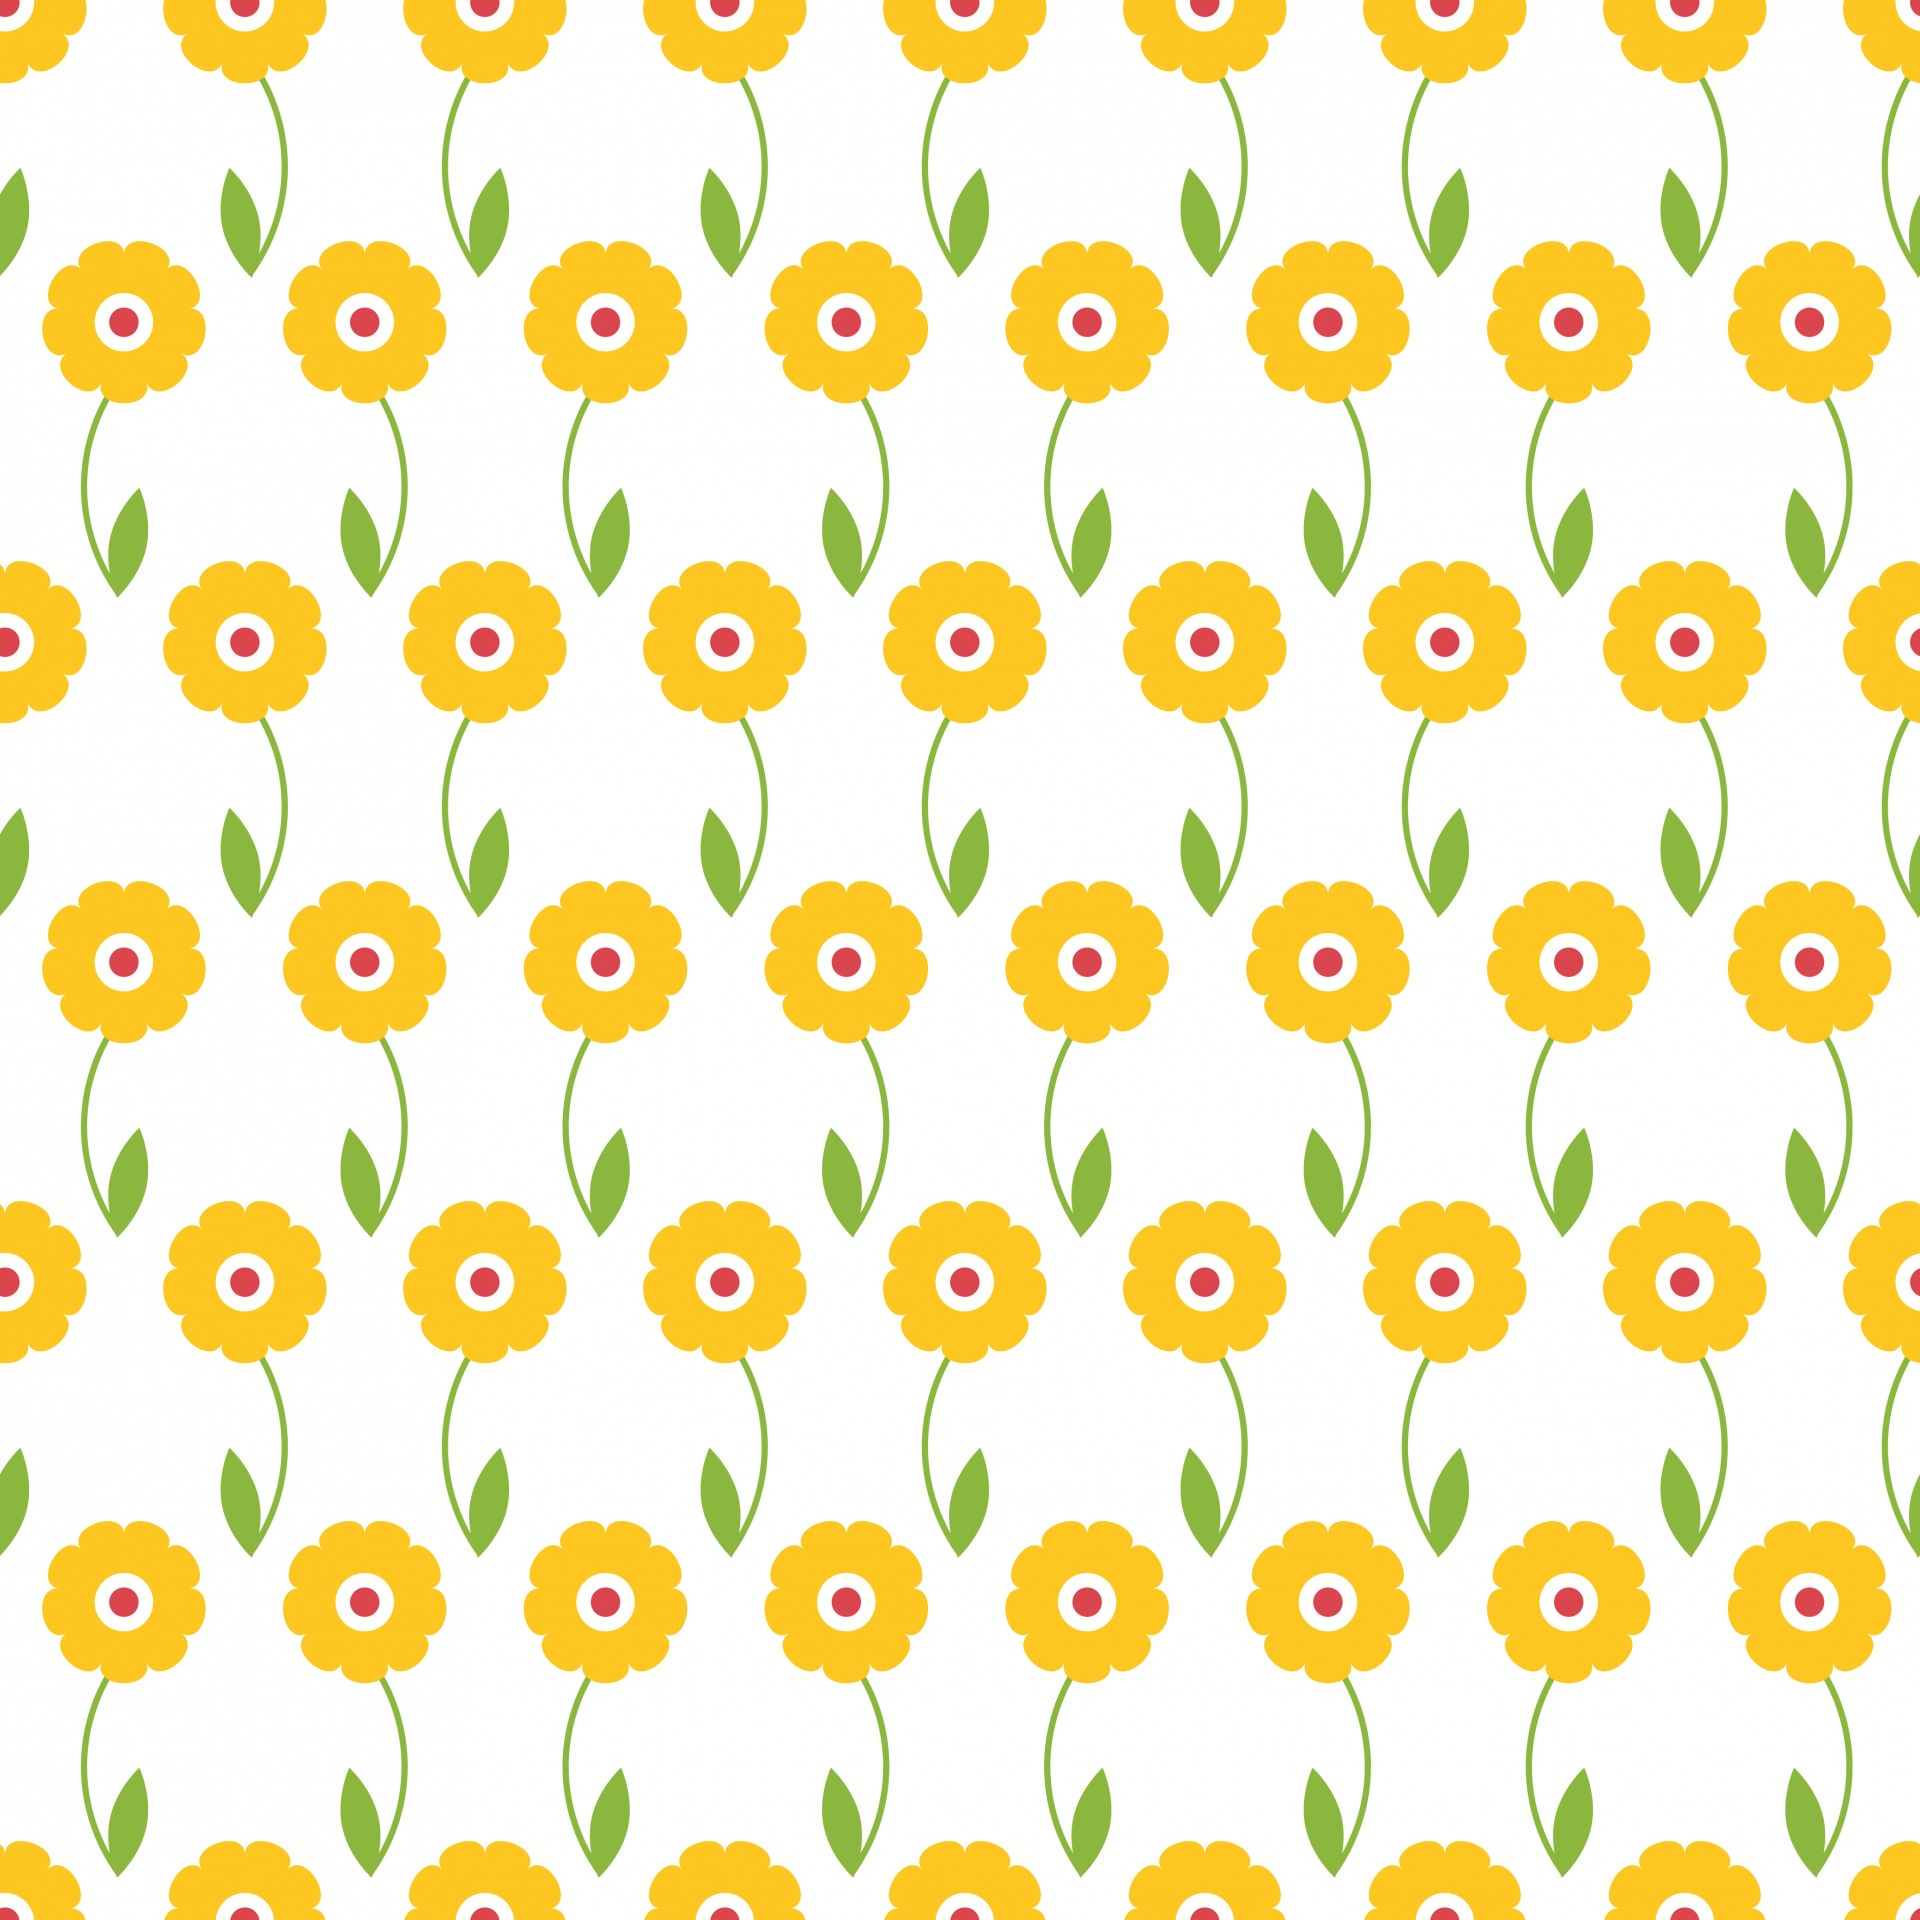 Flowers Floral Wallpaper Yellow White Free Image From Needpix Com